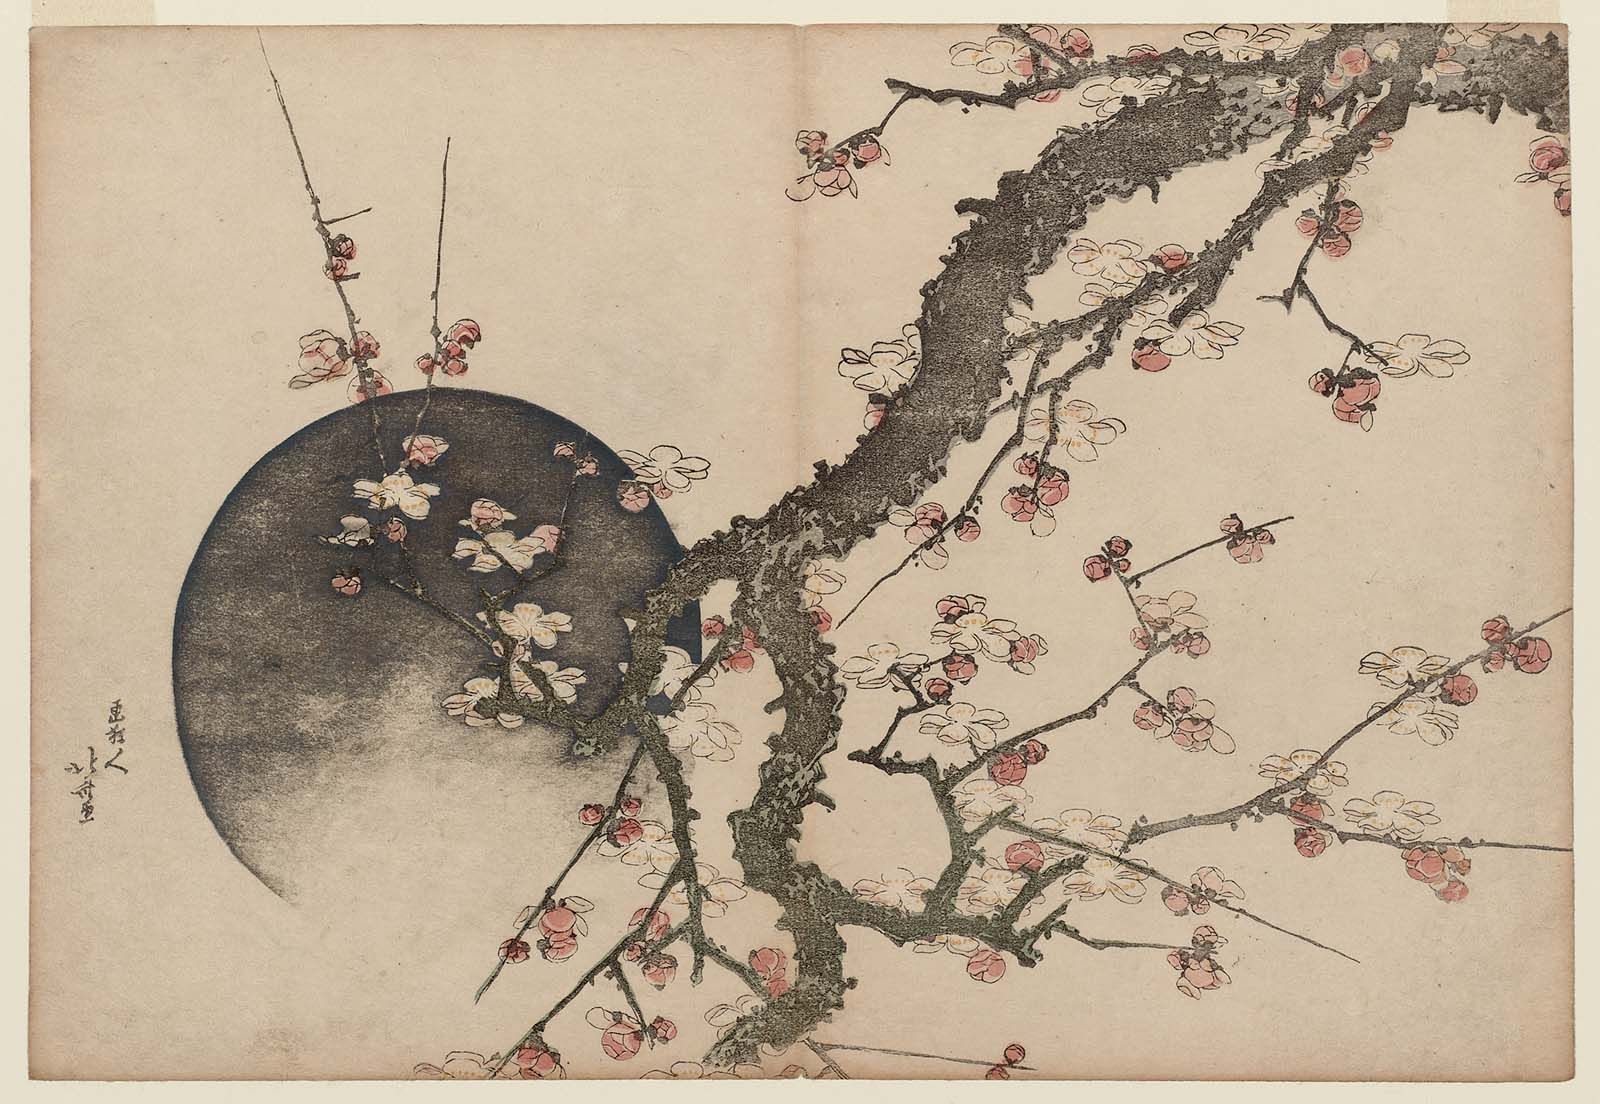 Hokusai.   Fleurs de prunier et lune  , Album Mont Fuji au printemps ( Haru no Fuji)  . Museum of Fine Arts, Boston.